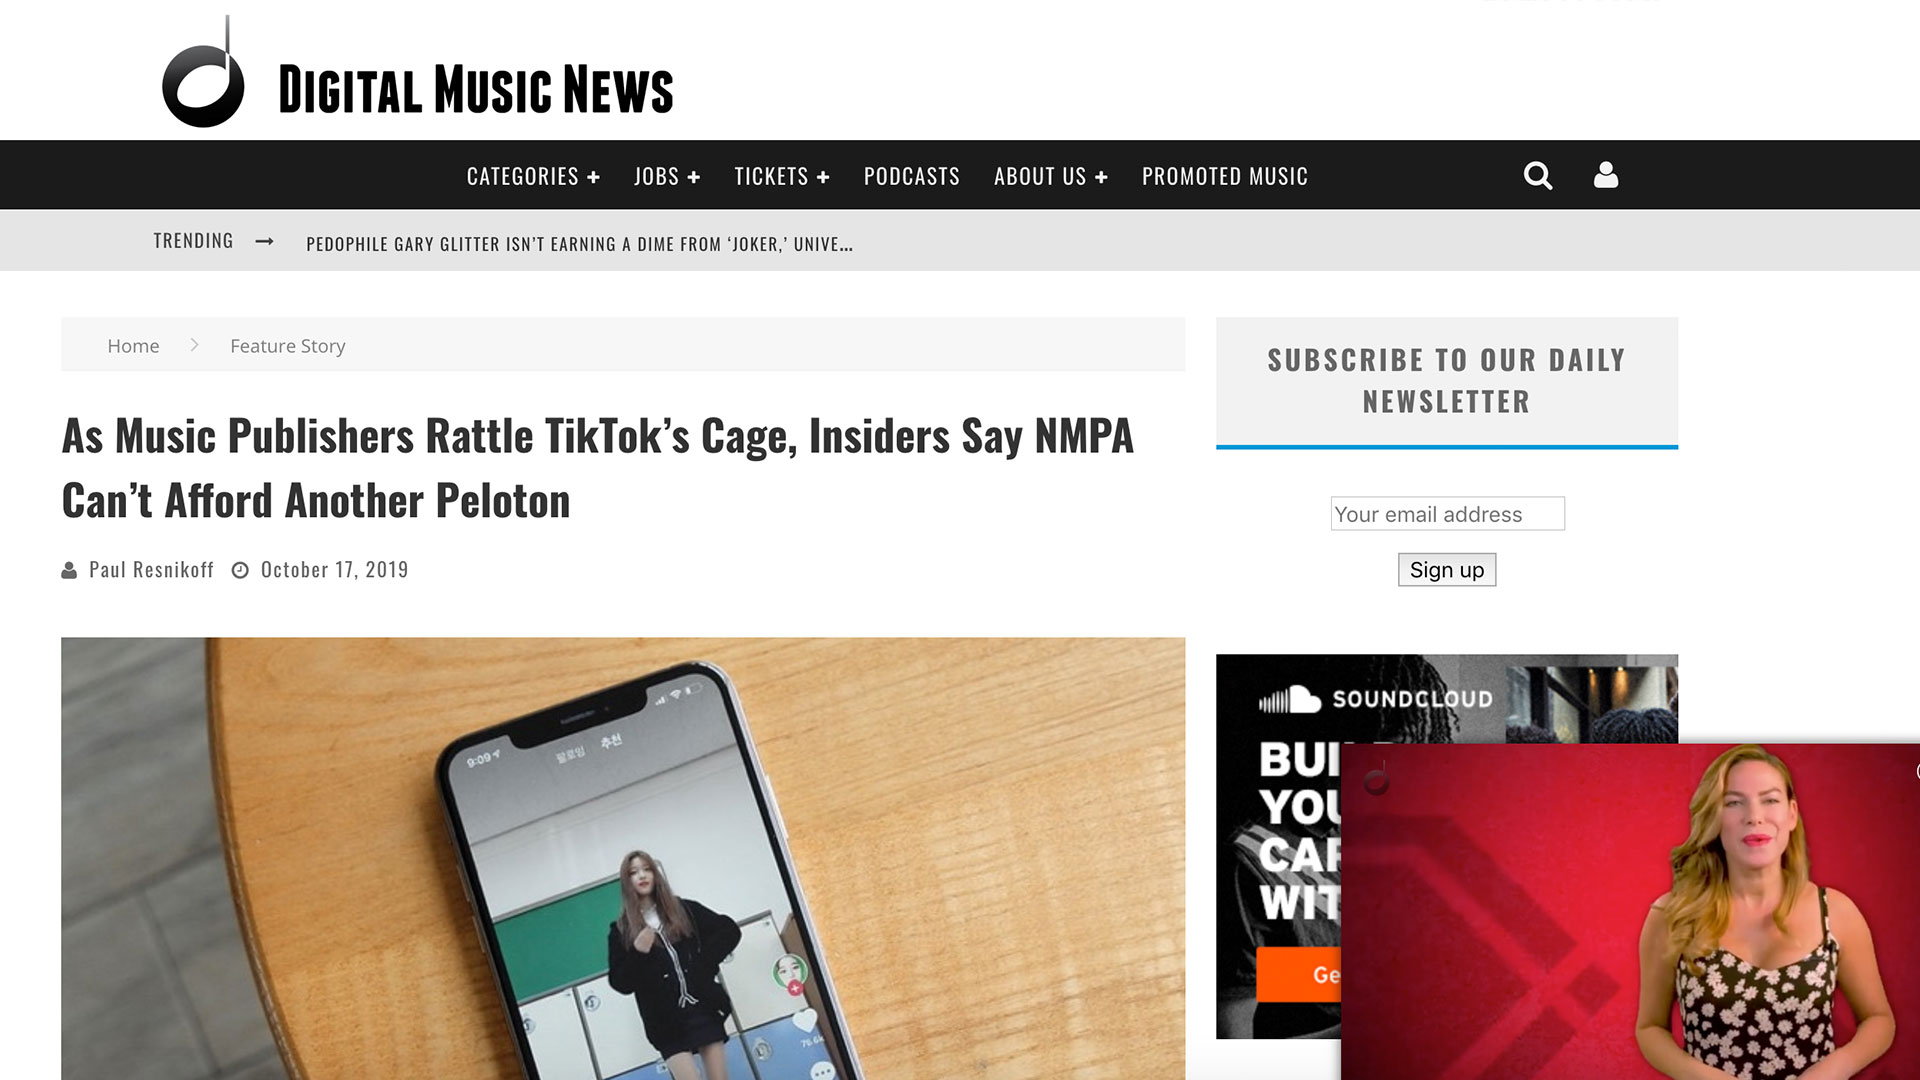 Fairness Rocks News As Music Publishers Rattle TikTok's Cage, Insiders Say NMPA Can't Afford Another Peloton